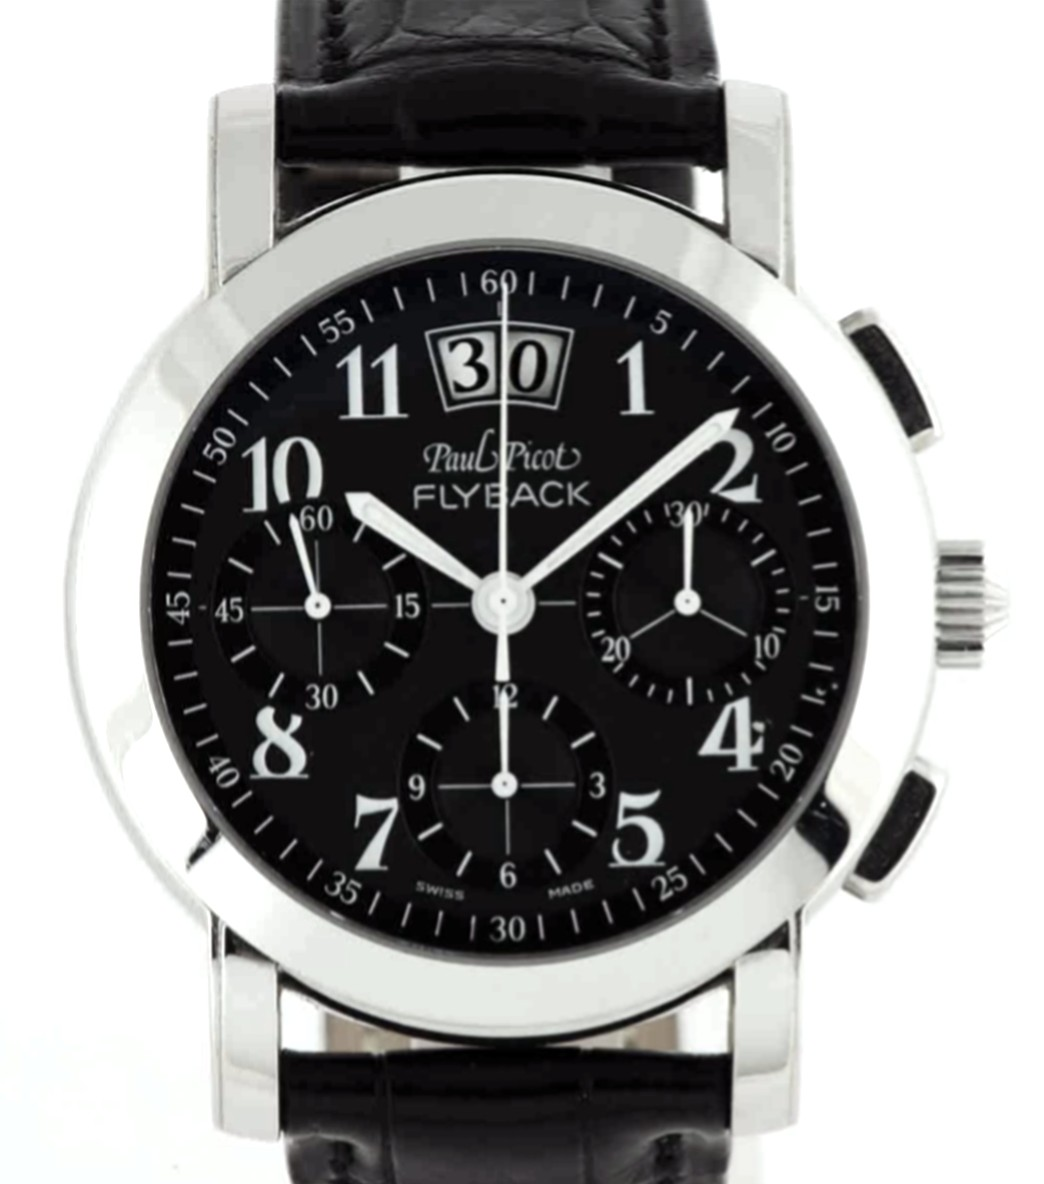 PAUL PICOT FLYBACK CHRONOGRAPH